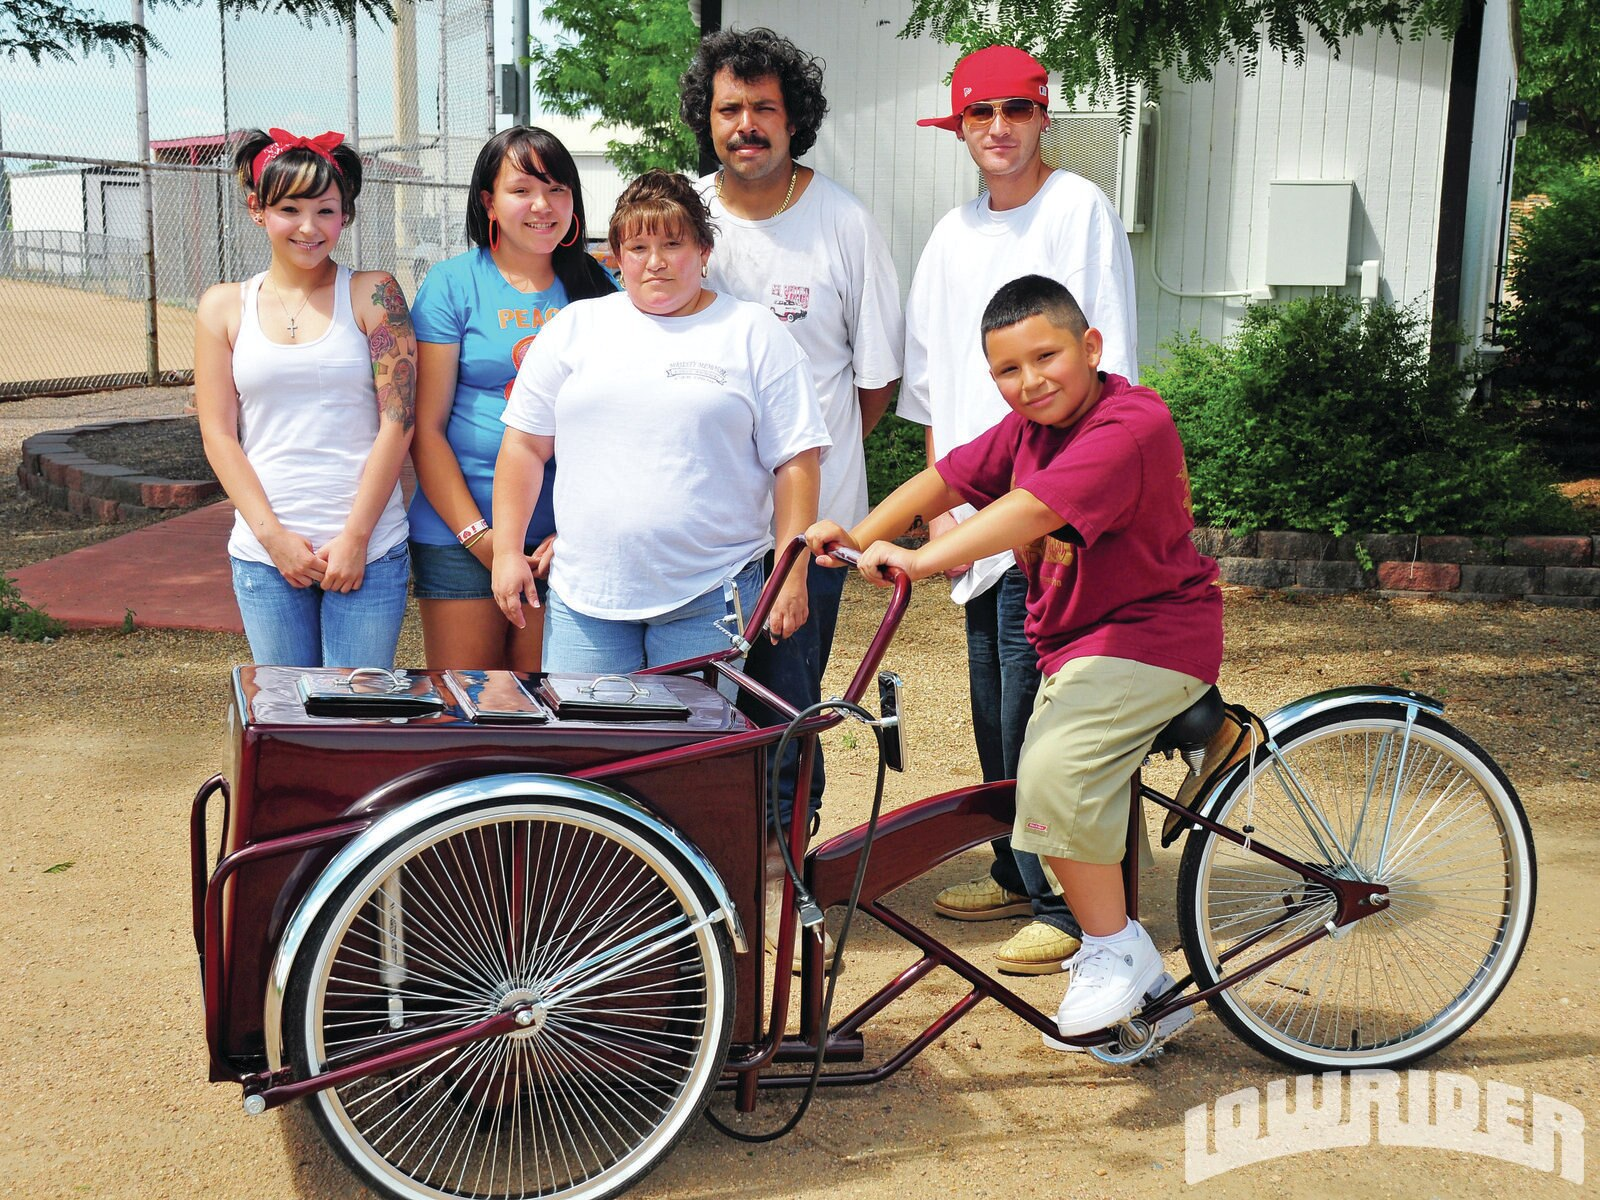 1203-lrmp-01-o-70s-schwinn-paleta-bicycle-ramos-family1